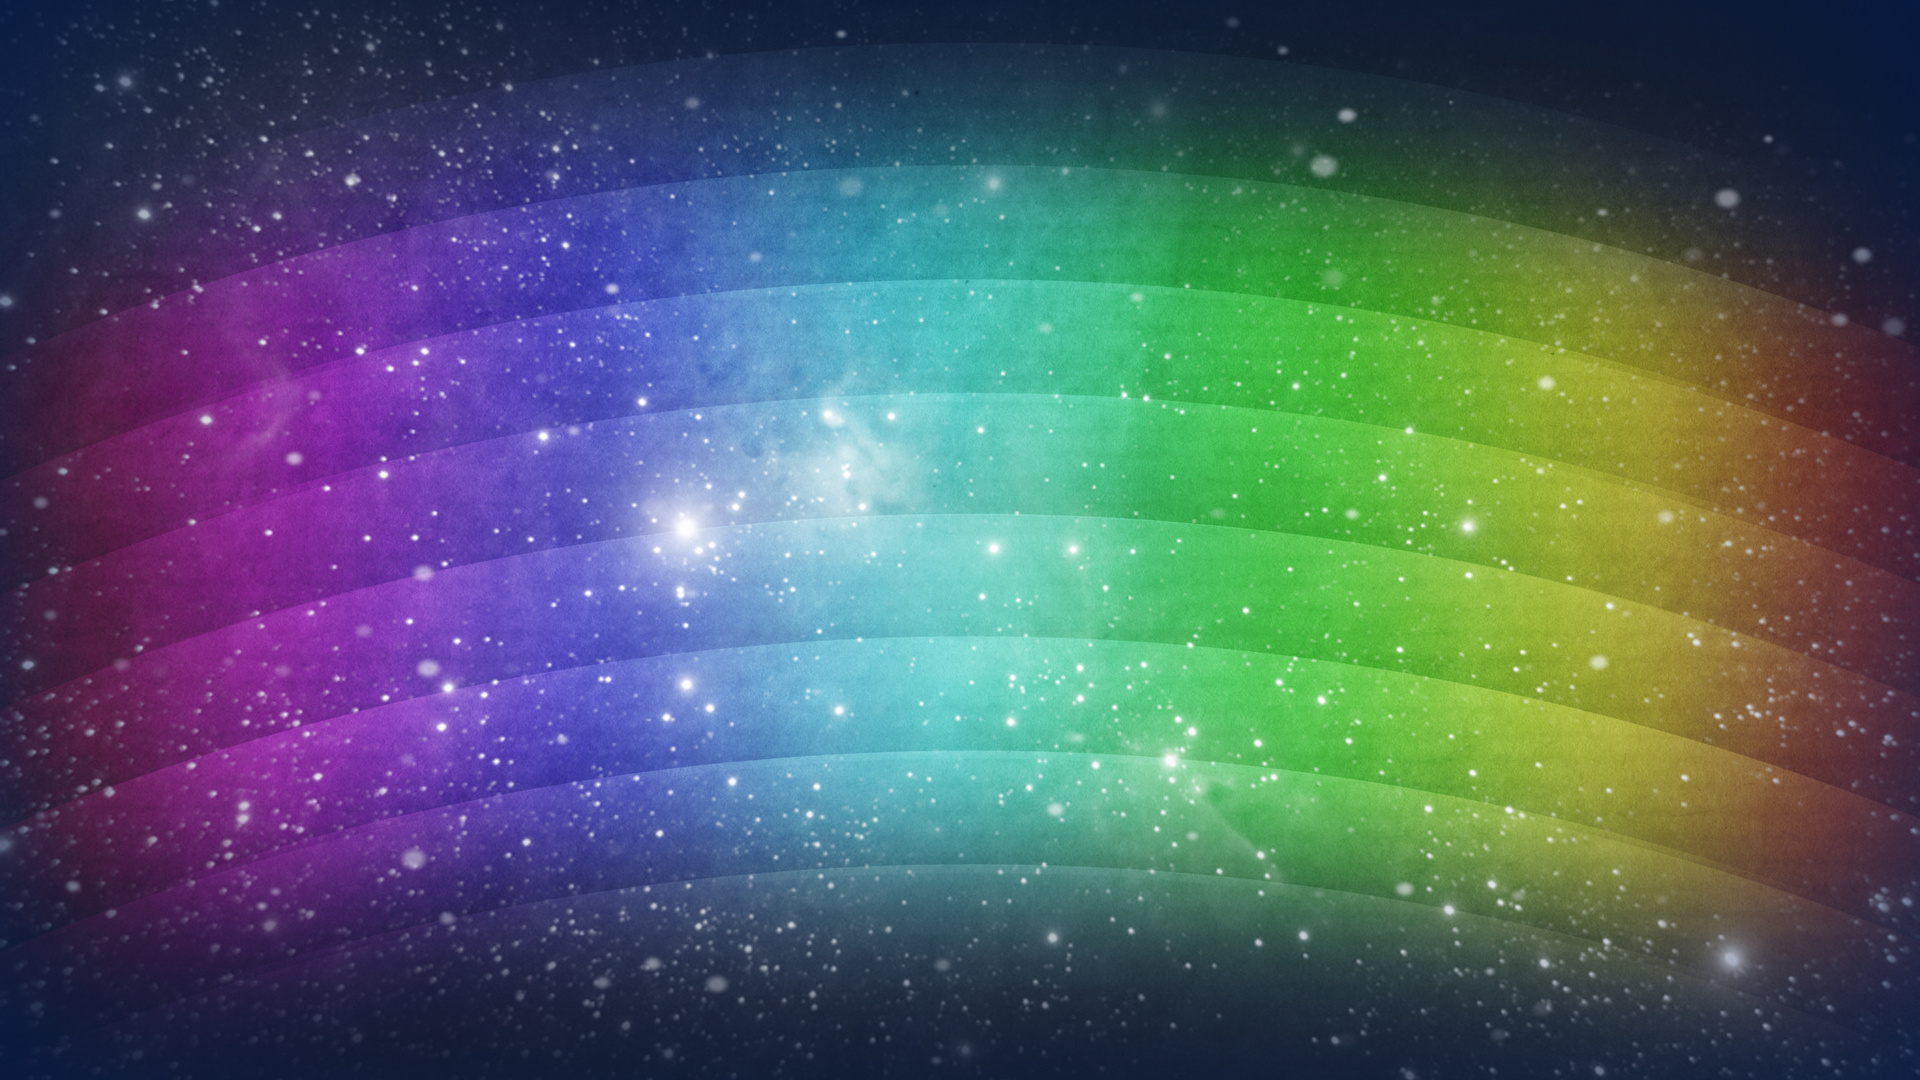 25 hd rainbow wallpapers for Arcobaleno design